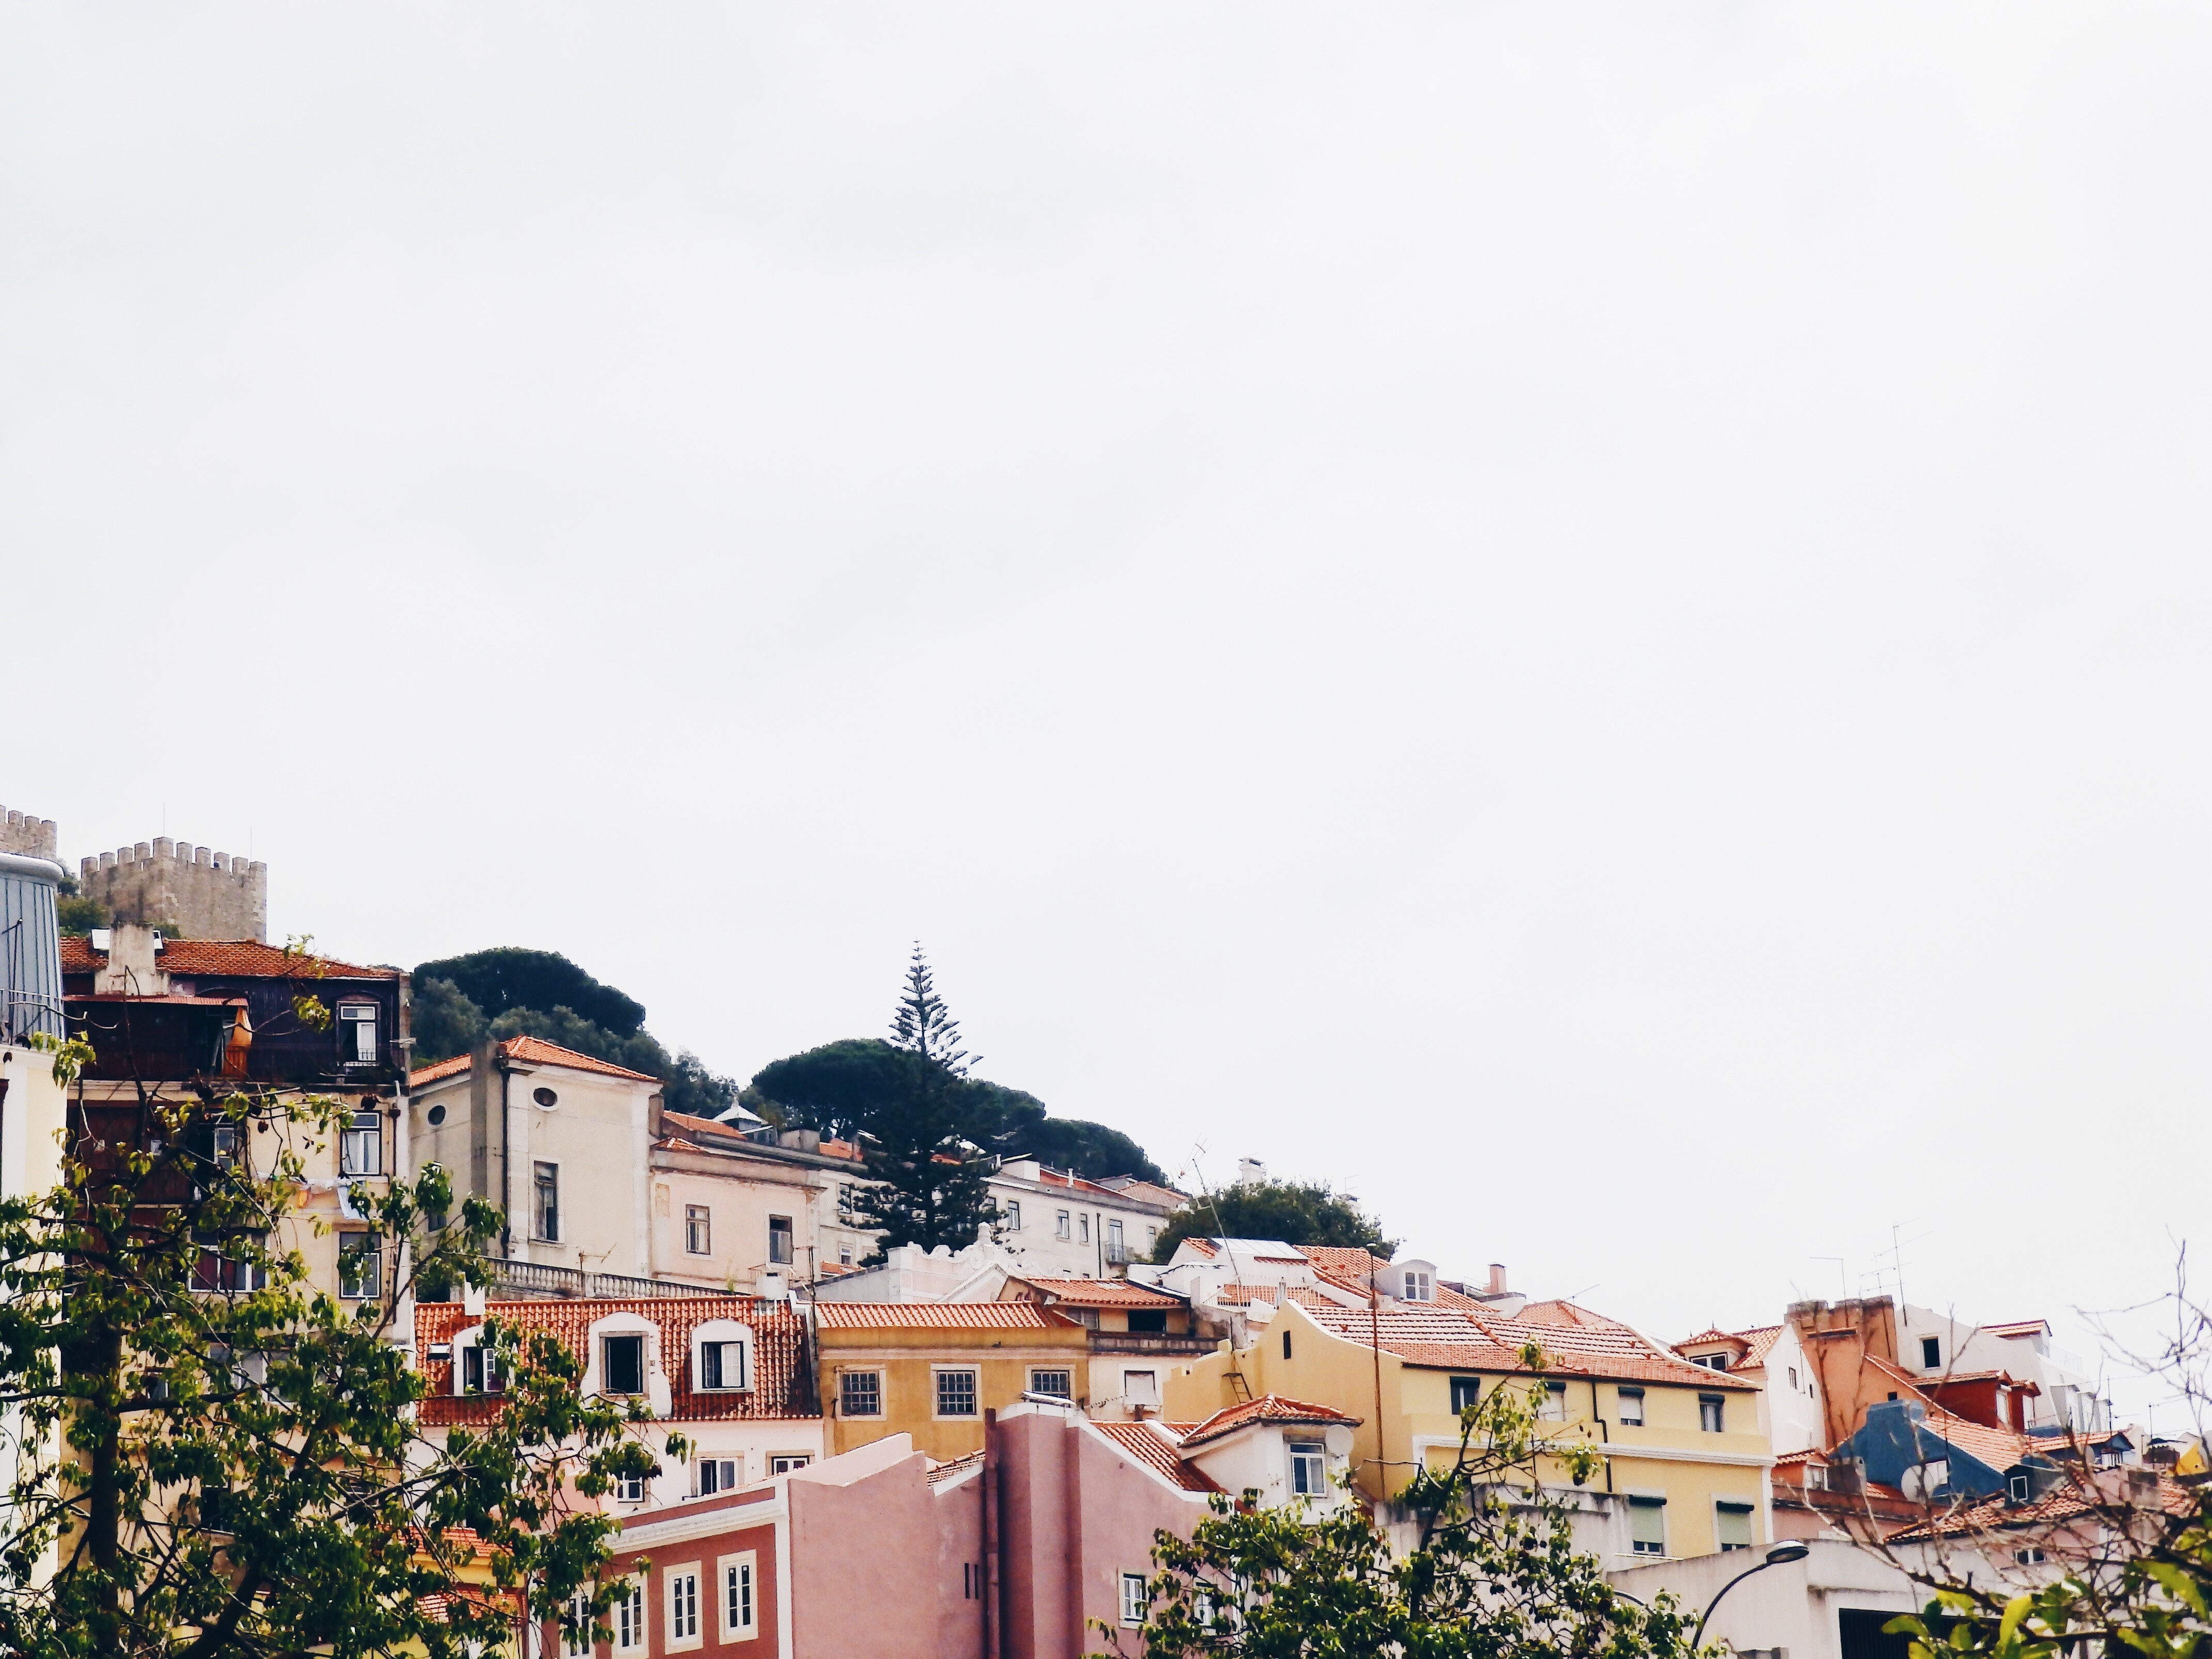 Photo by Luisa Azevedo on Unsplash